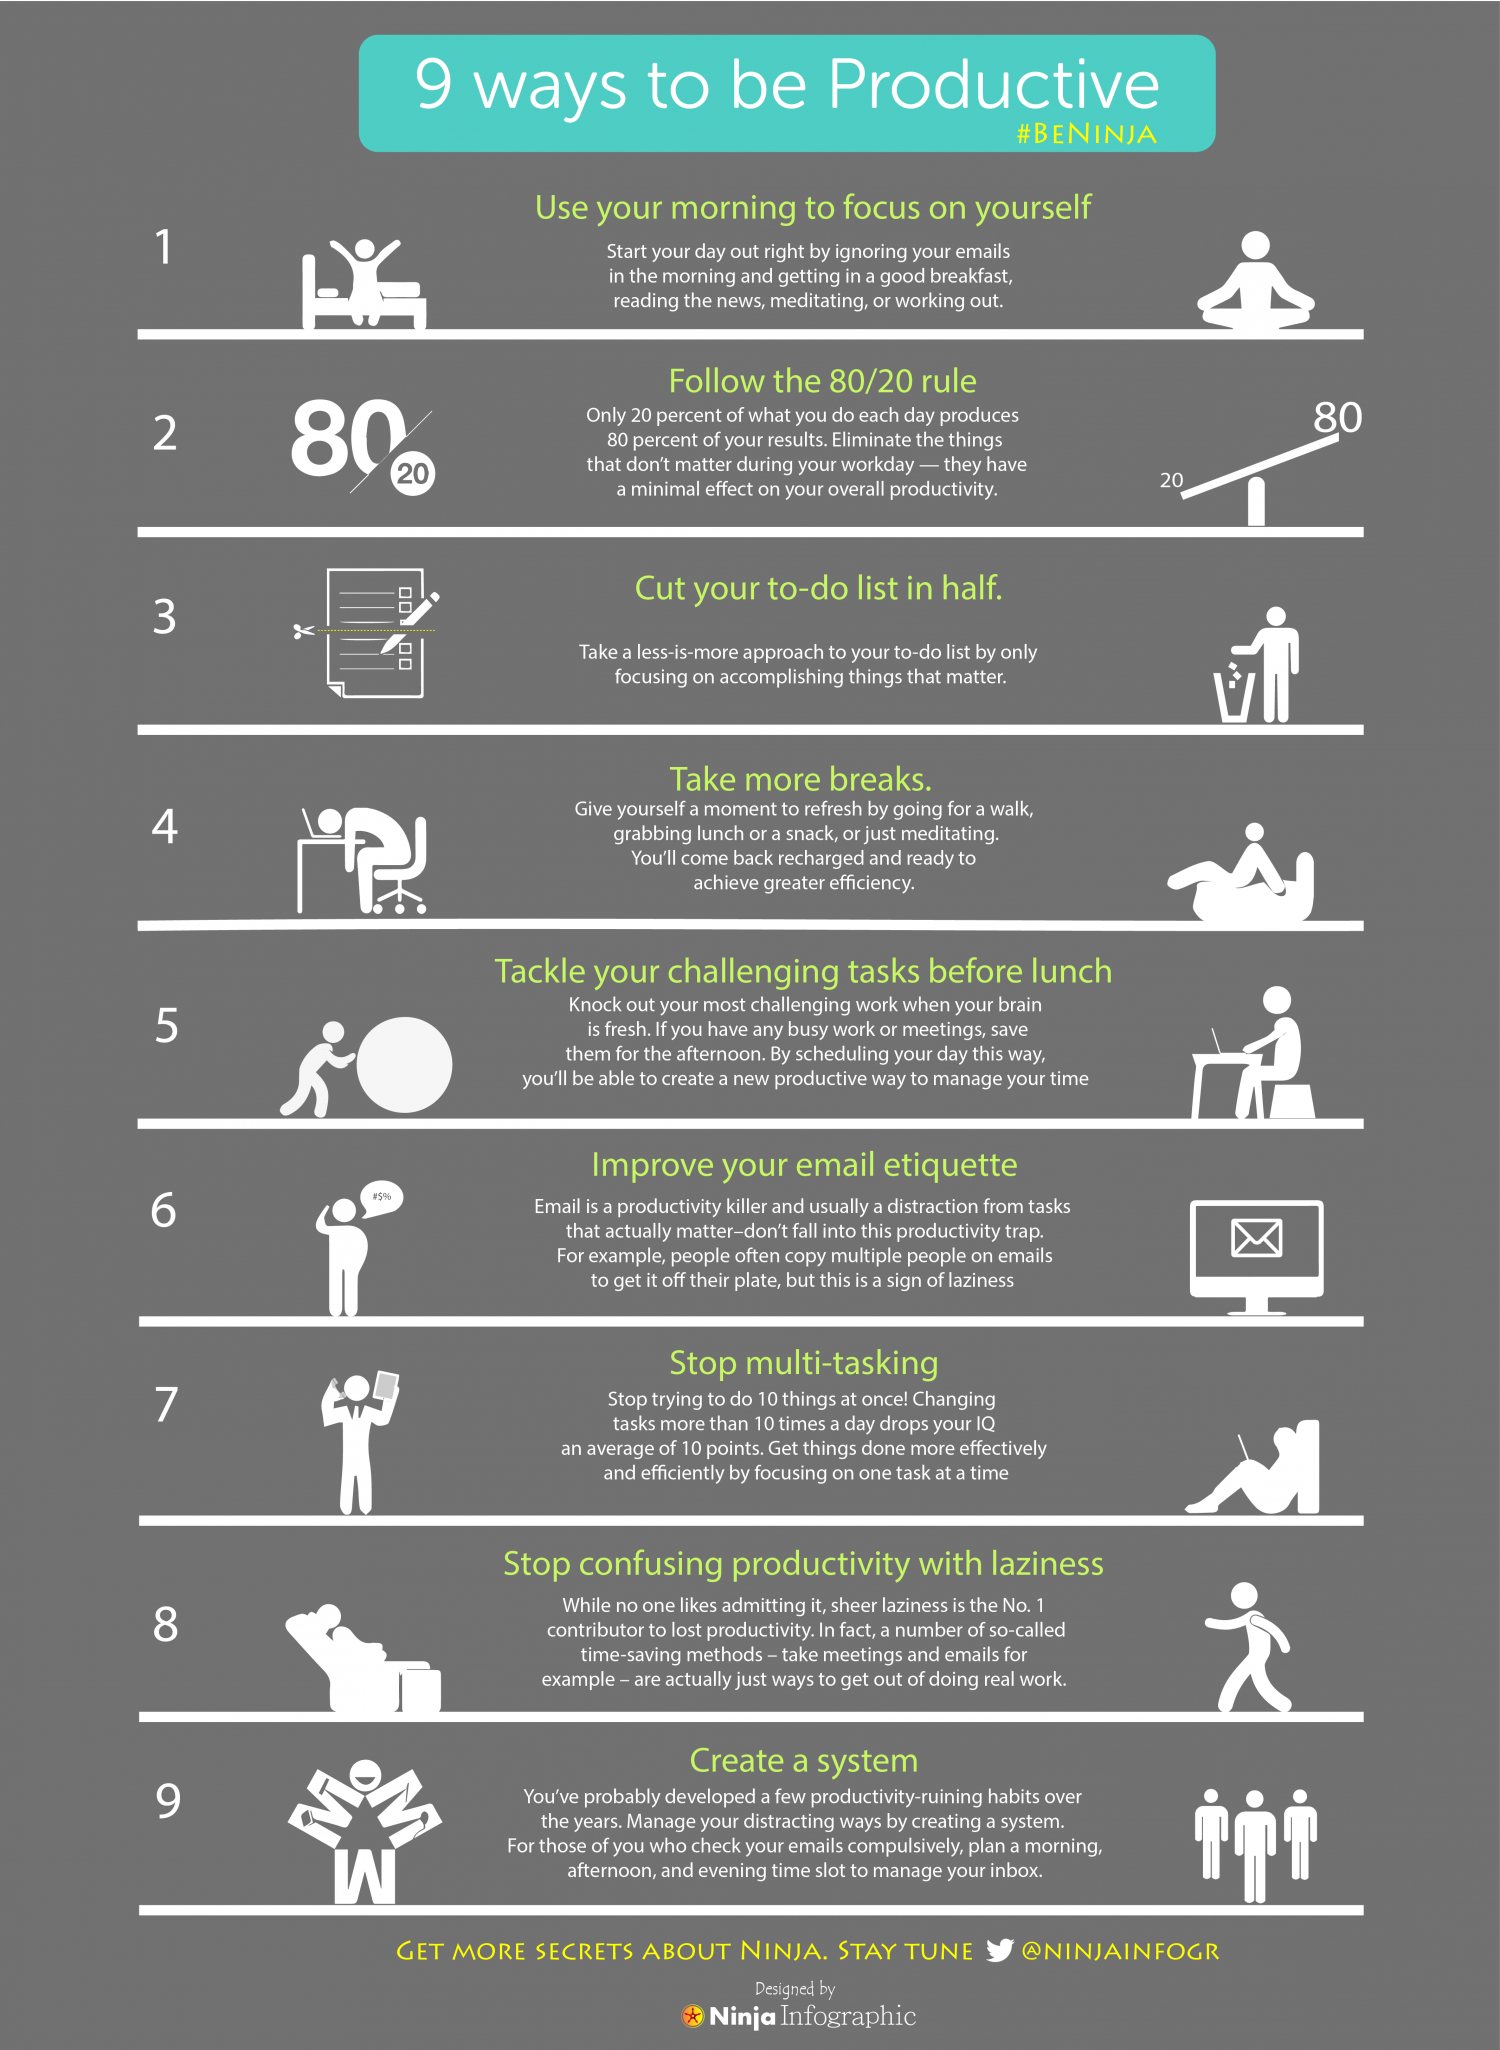 9 Ways to be Productive Infographic